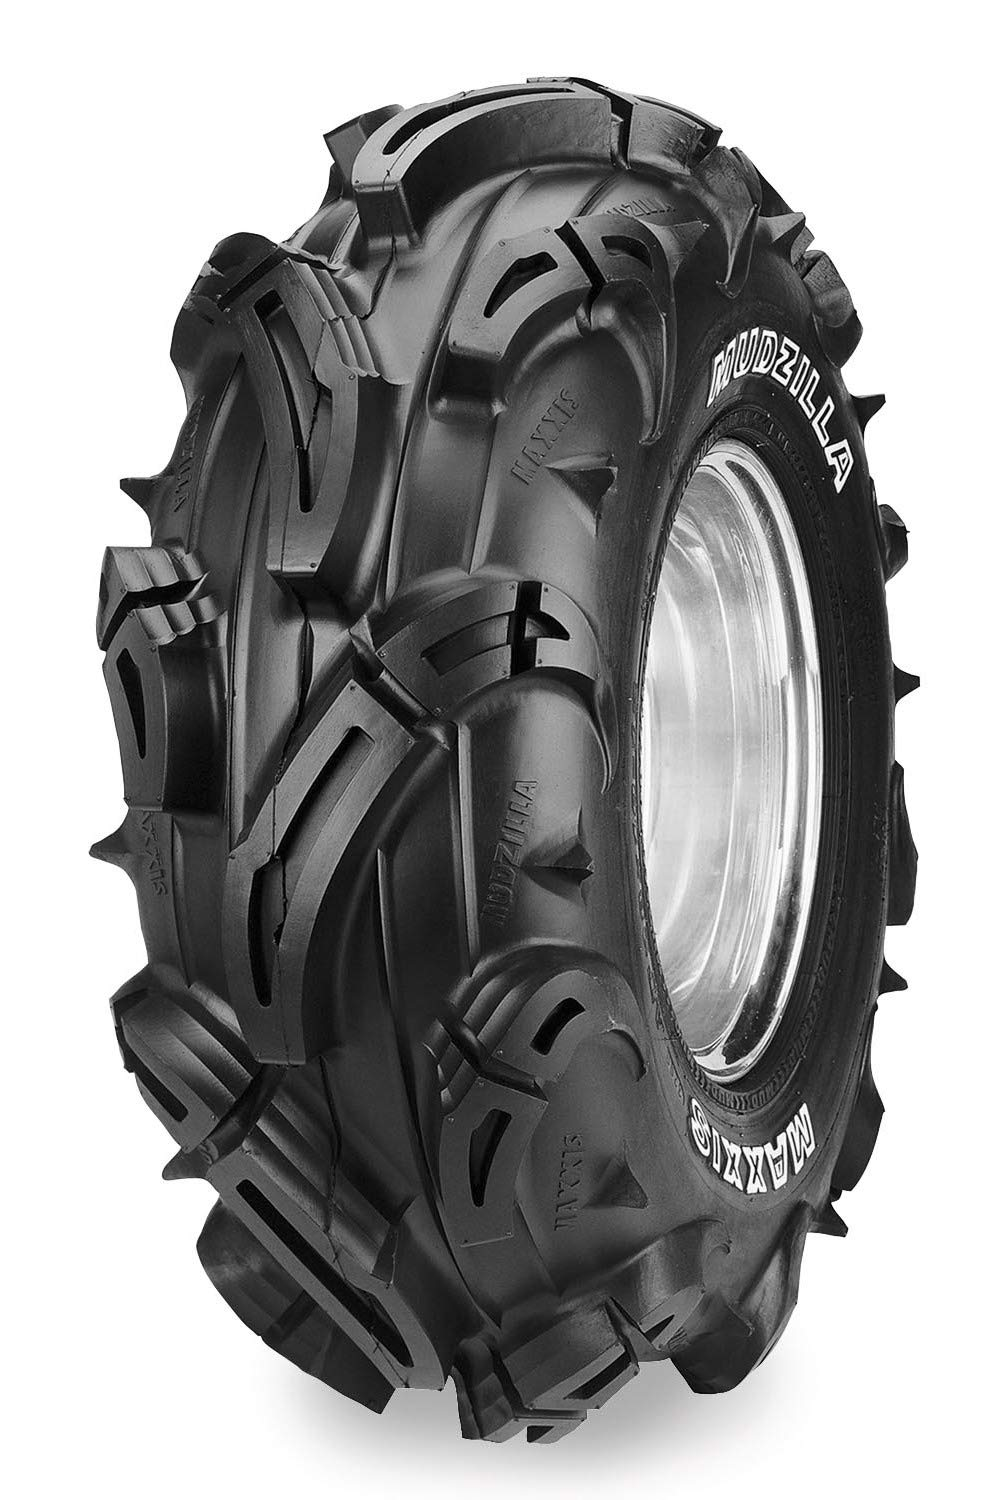 Maxxis M966 Mudzilla Tire - Front/Rear - 27x9x12 , Tire Size: 27x9x12, Position: Front/Rear, Rim Size: 12, Tire Ply: 6, Tire Type: ATV/UTV, Tire Construction: Radial, Tire Application: Mud/Snow TM16677300